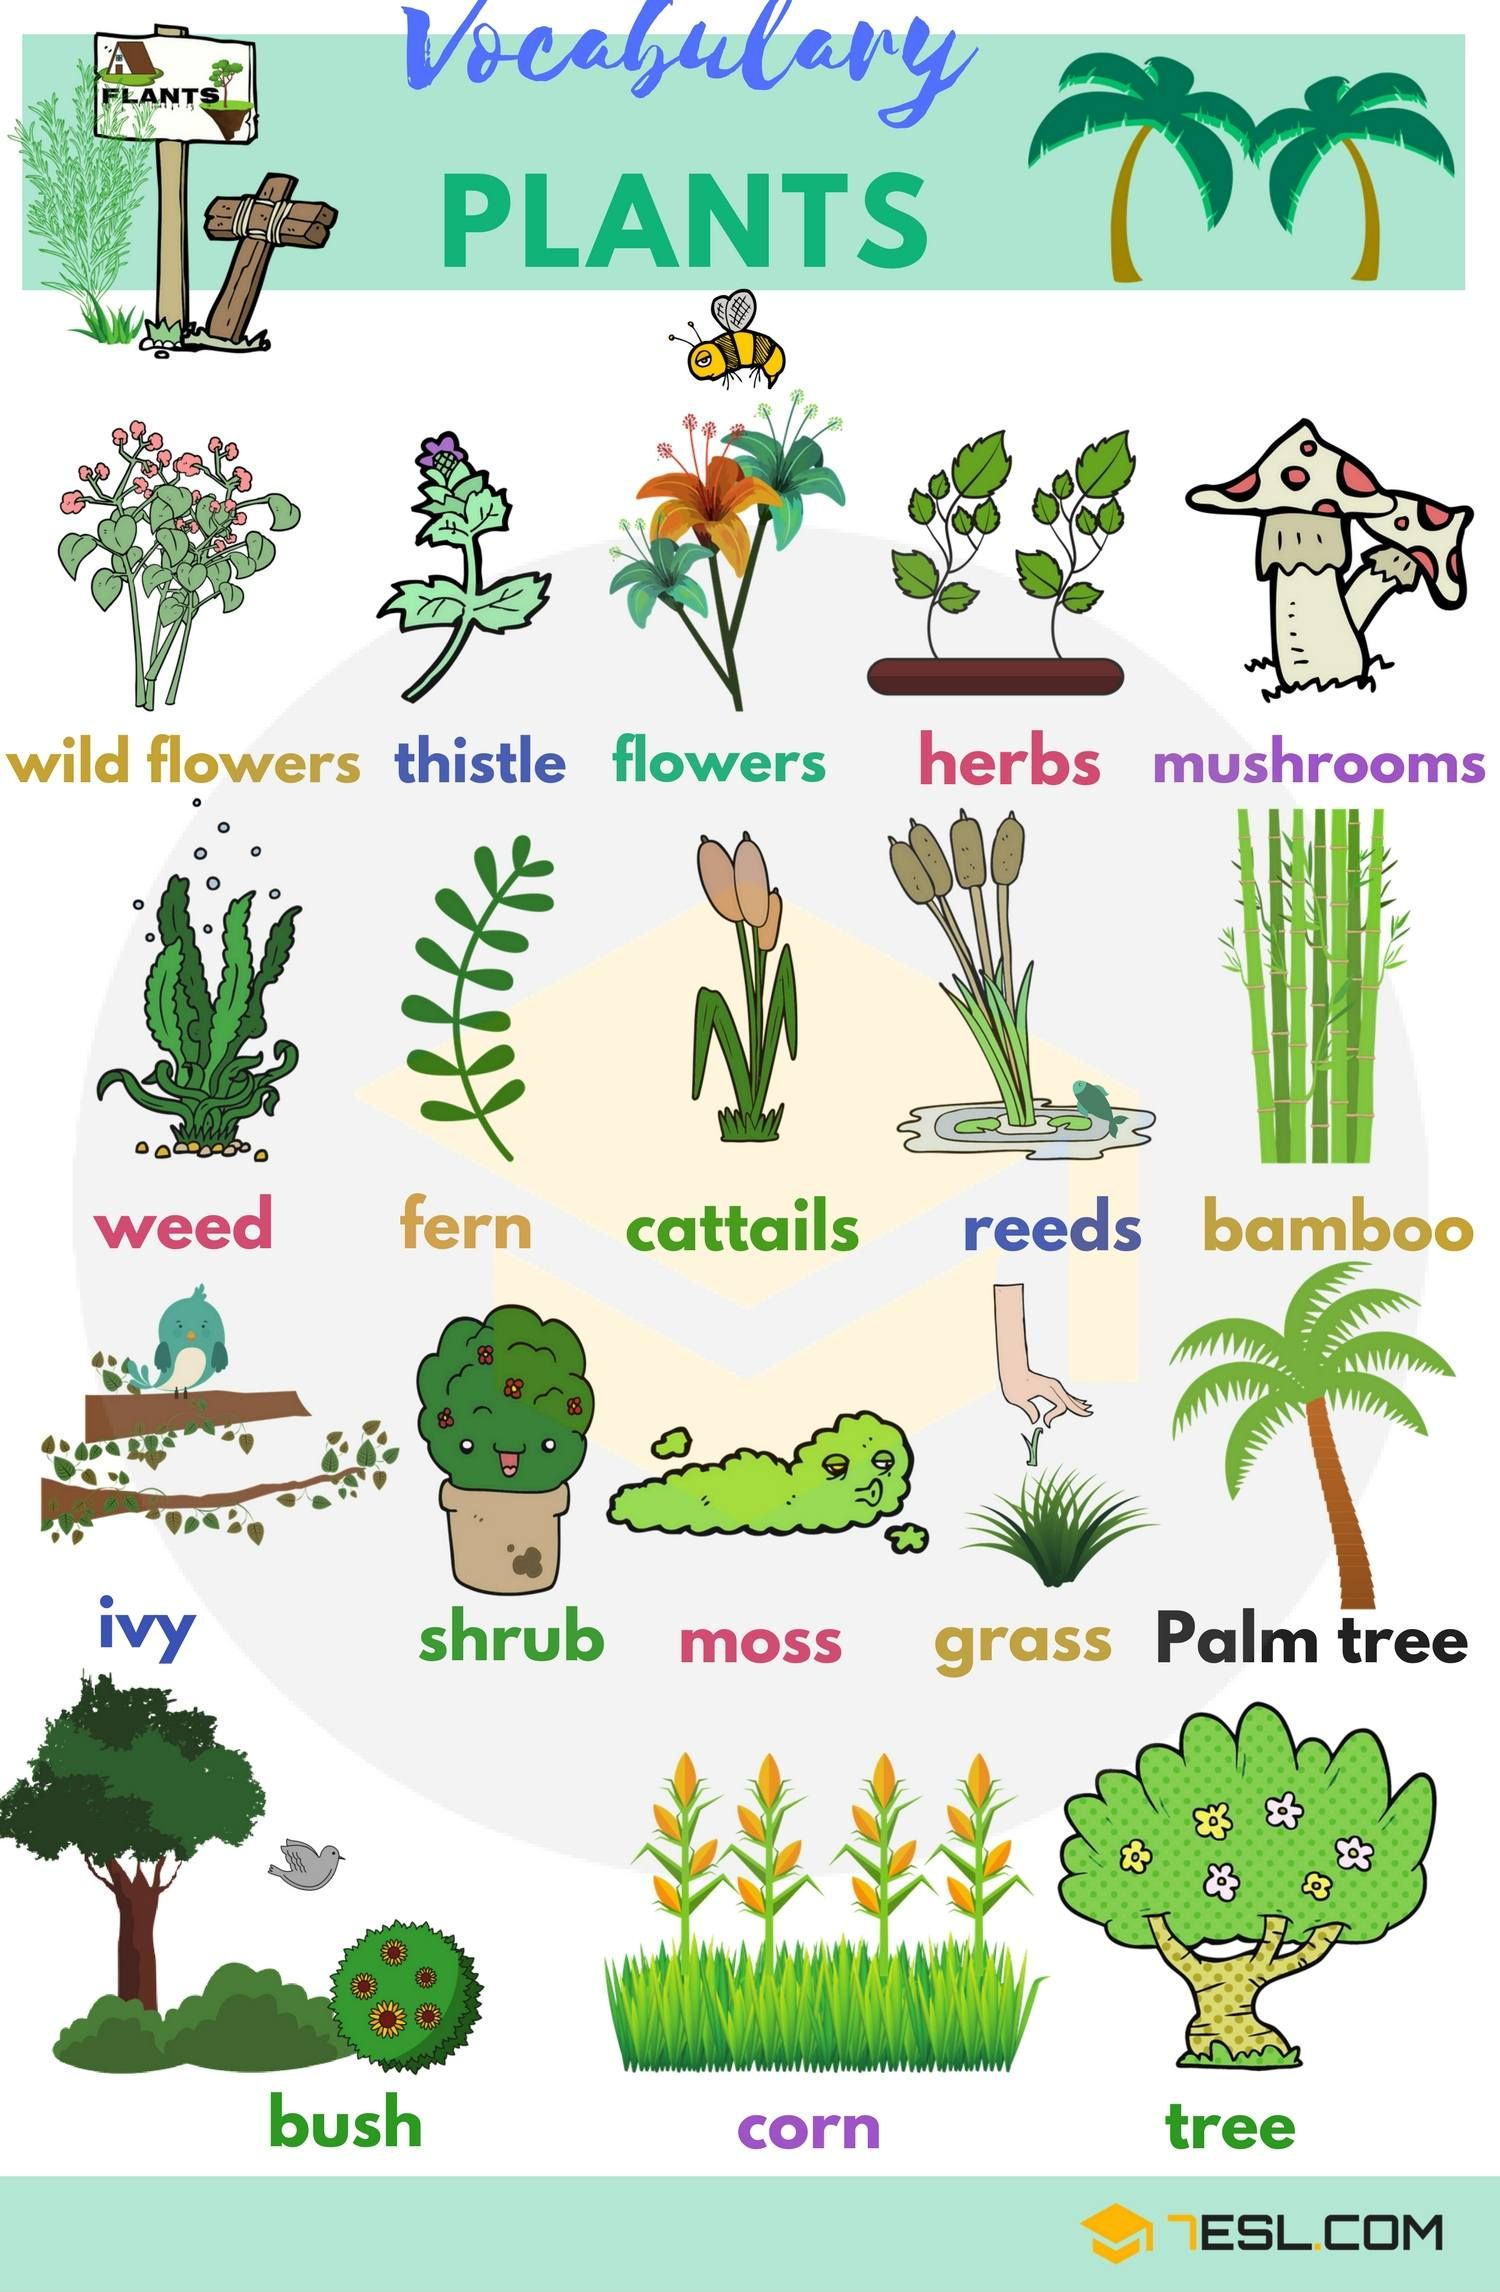 Plant Names List Of Common Types Of Plants And Trees 7 E S L English Vocabulary Plants Vocabulary Learn English